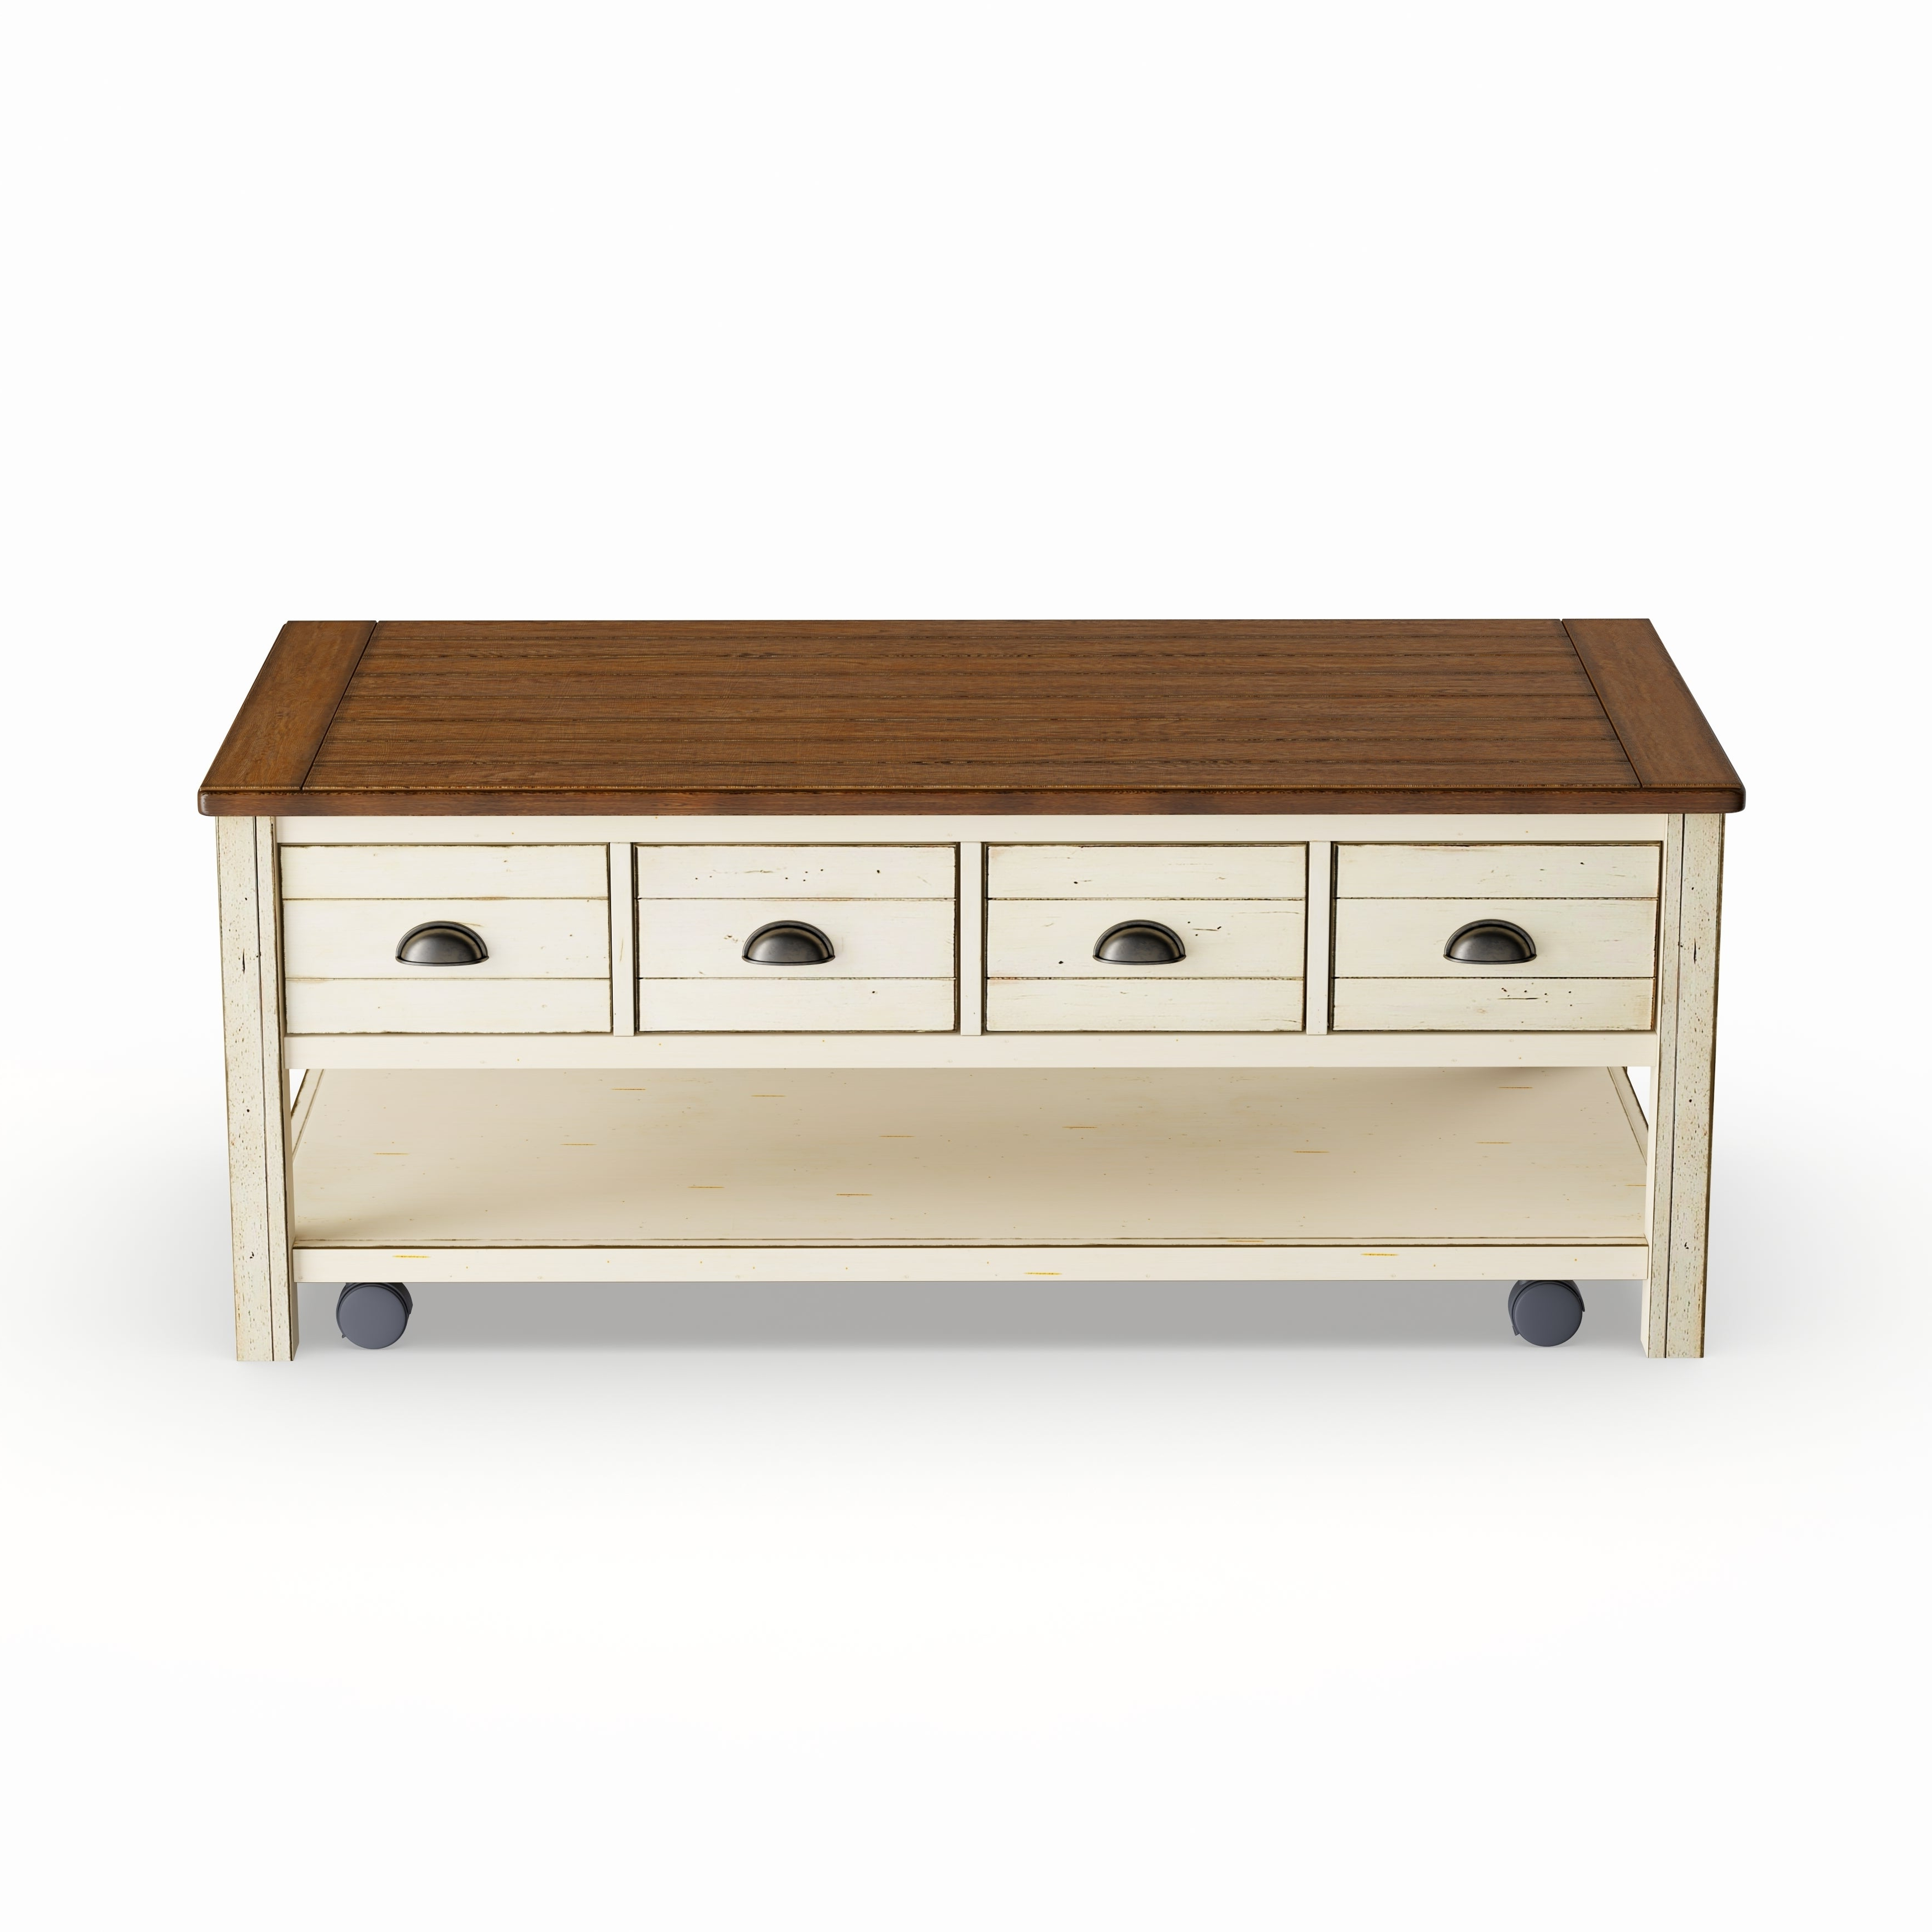 2020 Copper Grove Bowron Dark Cherry Coffee Tables In Copper Grove Torngatalabaster Storage Coffee Table With Casters (Gallery 11 of 20)